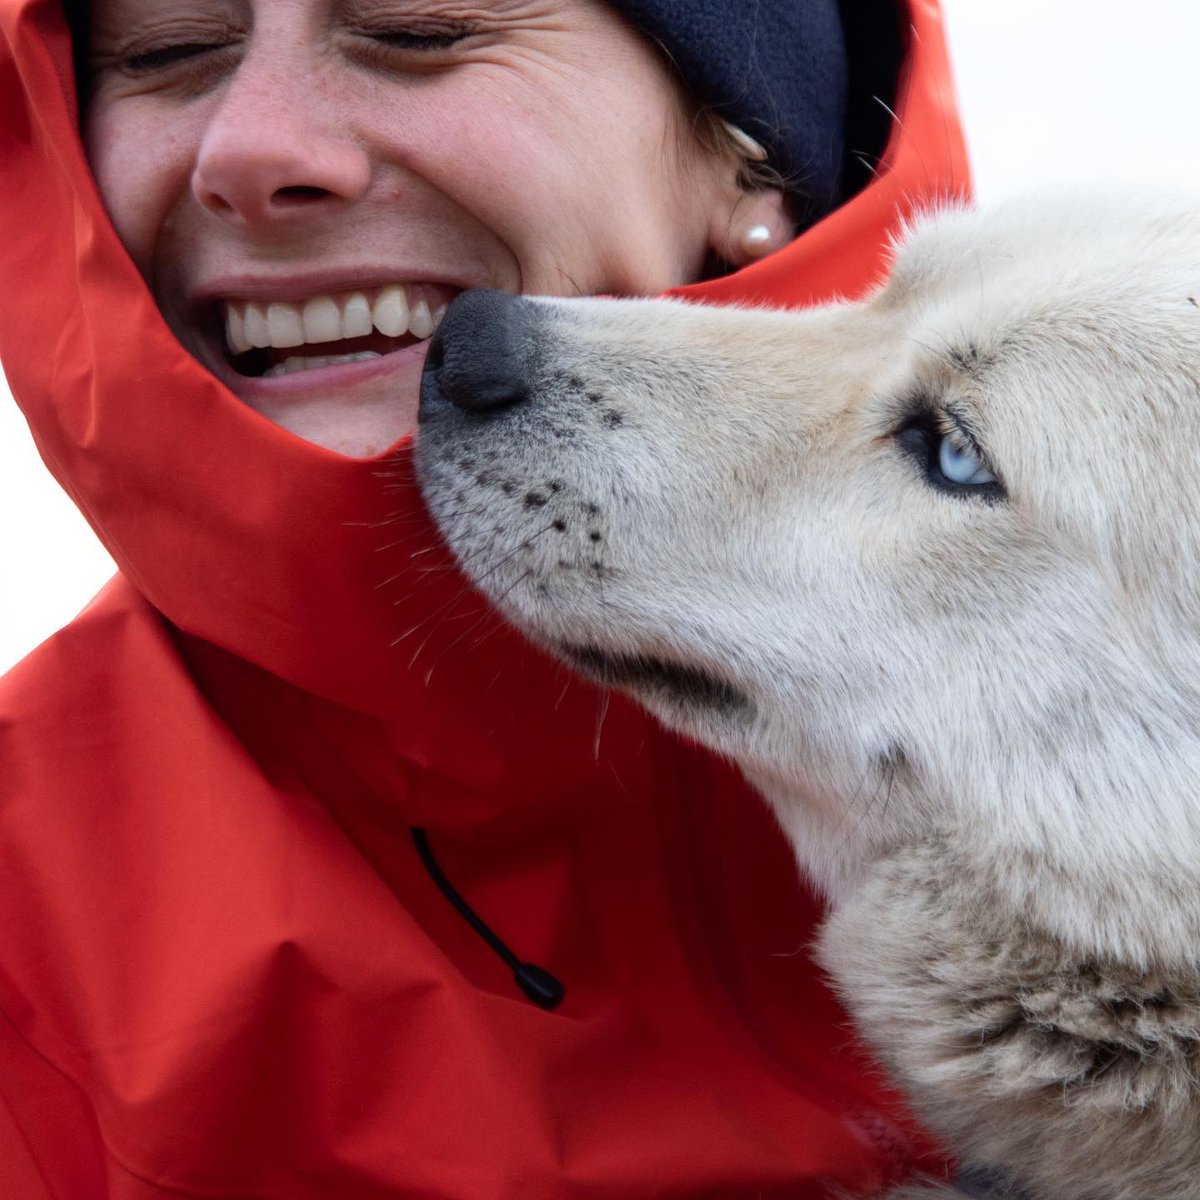 A Year Ago- Svalbard History has proven that the best type of animal to have by your side during snowstorms and extreme cold weather is human's best friends- the dog😊 Thank you to @whale_nerd for capturing our bonding moments! . @natgeoeducation @lindbladexp https://t.co/C0bQAneLeQ